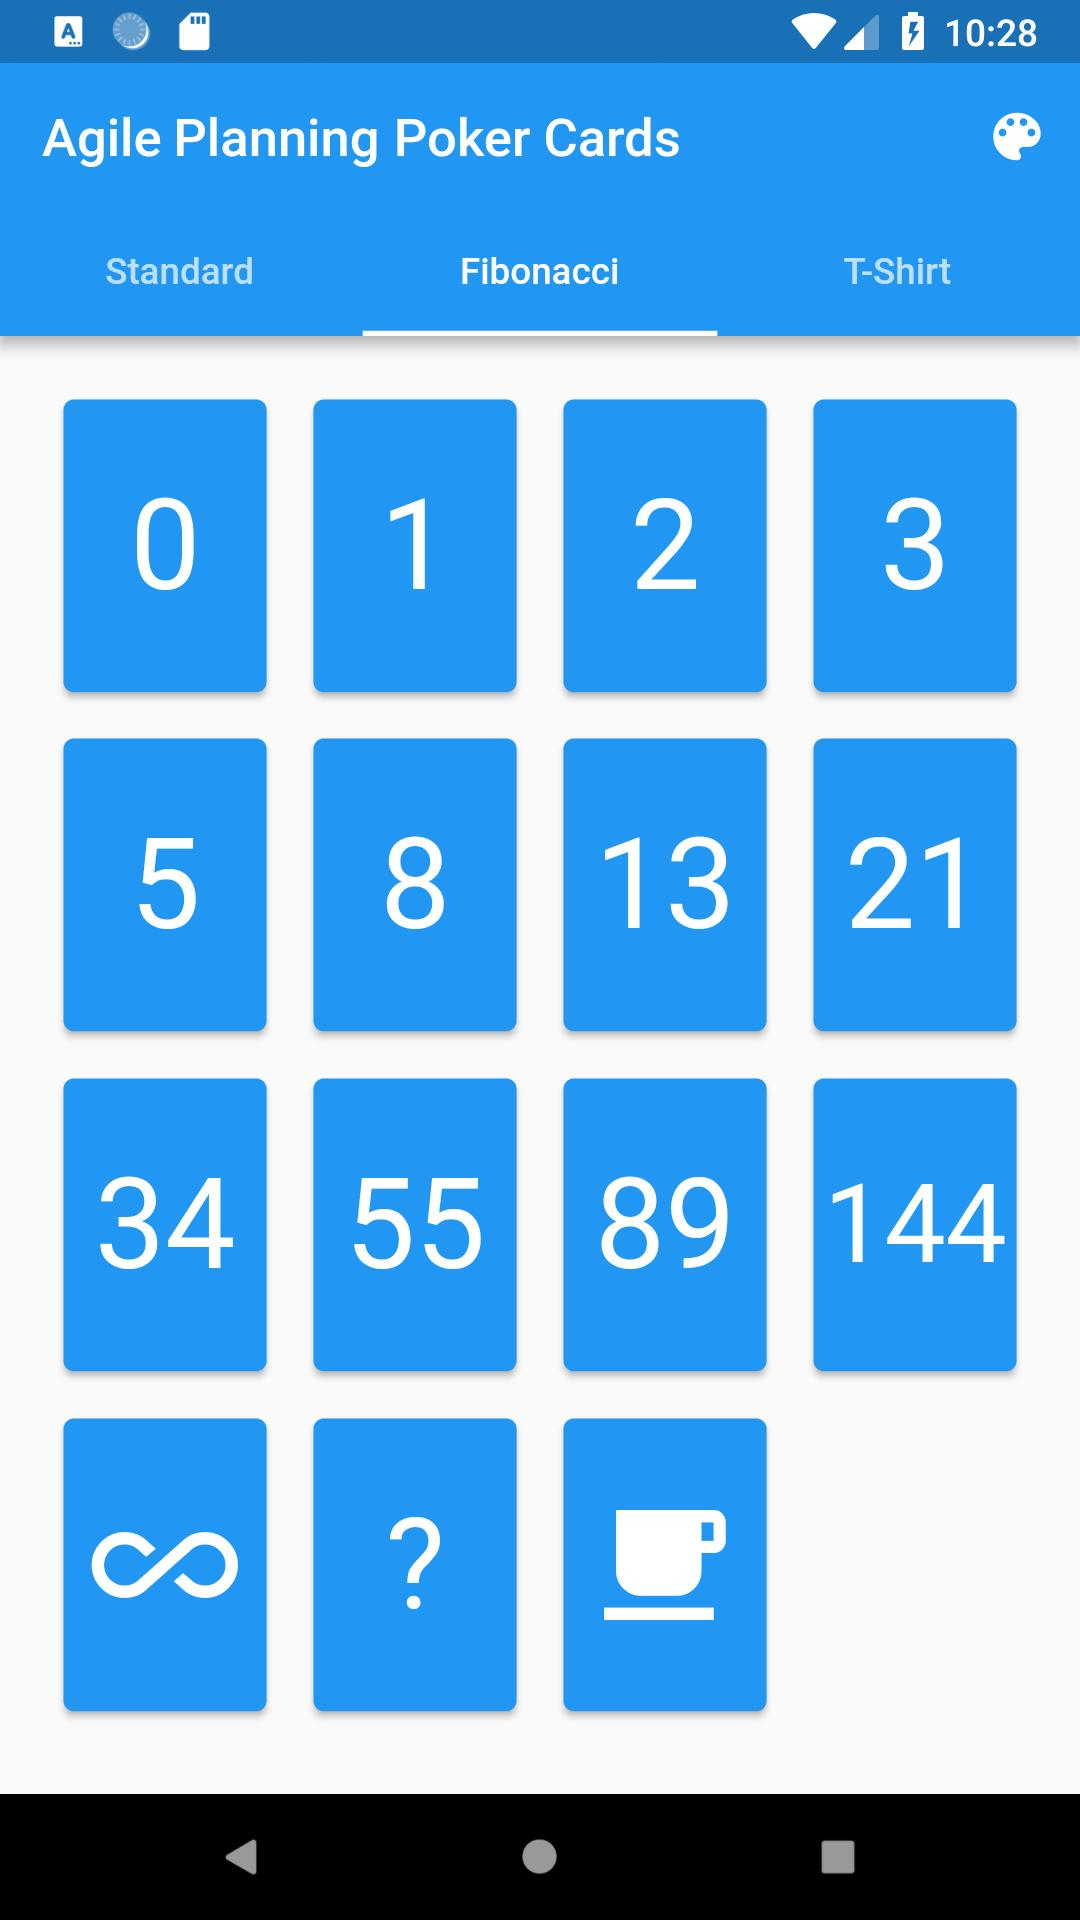 Agile Planning Poker Cards for Android - APK Download